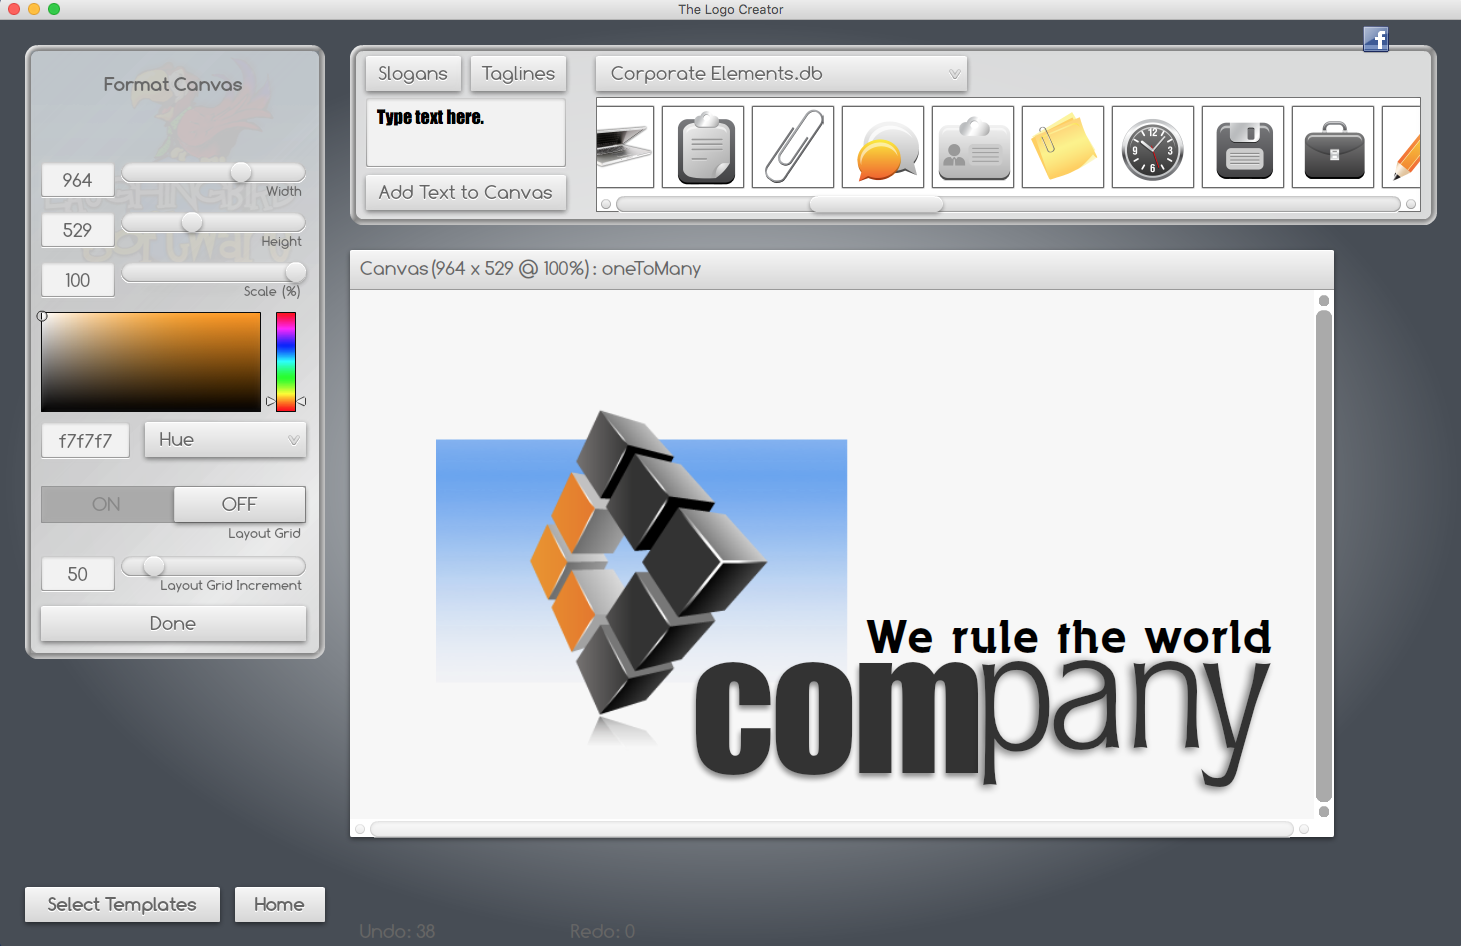 The Logo Creator is the best logo design tool on the